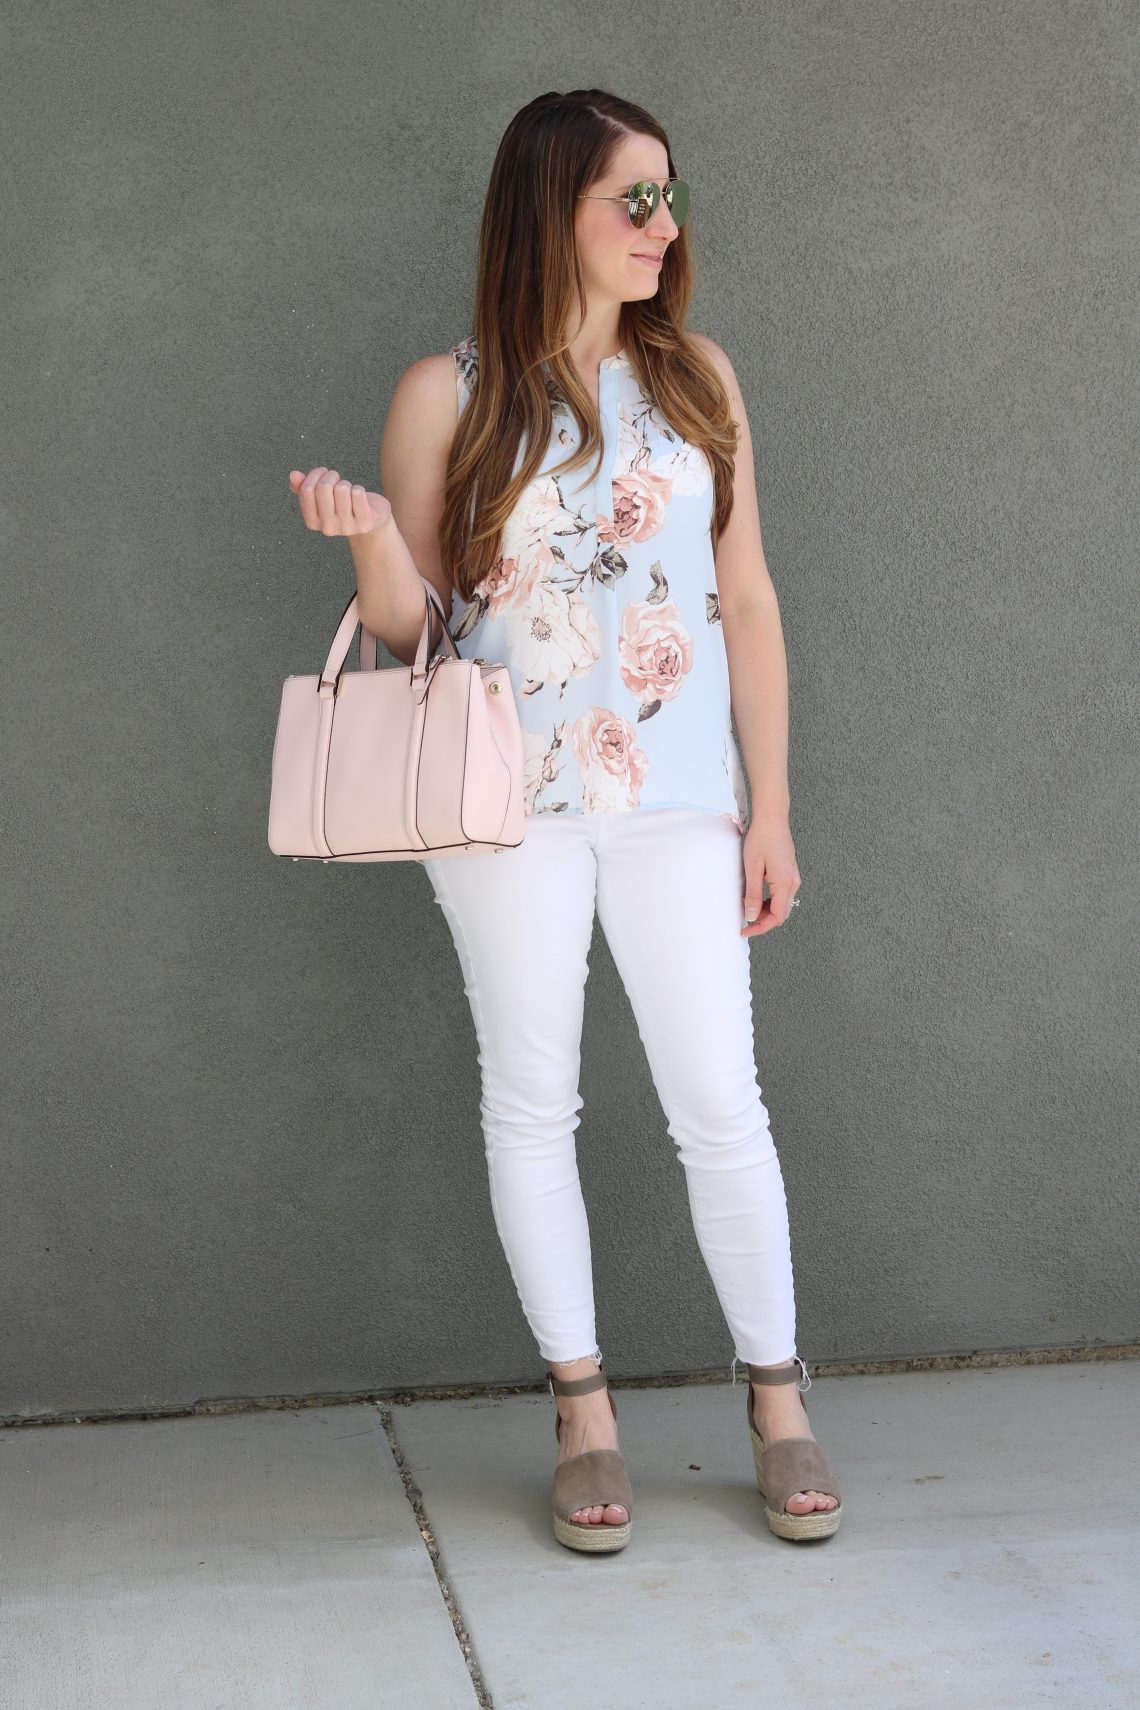 floral top outfit